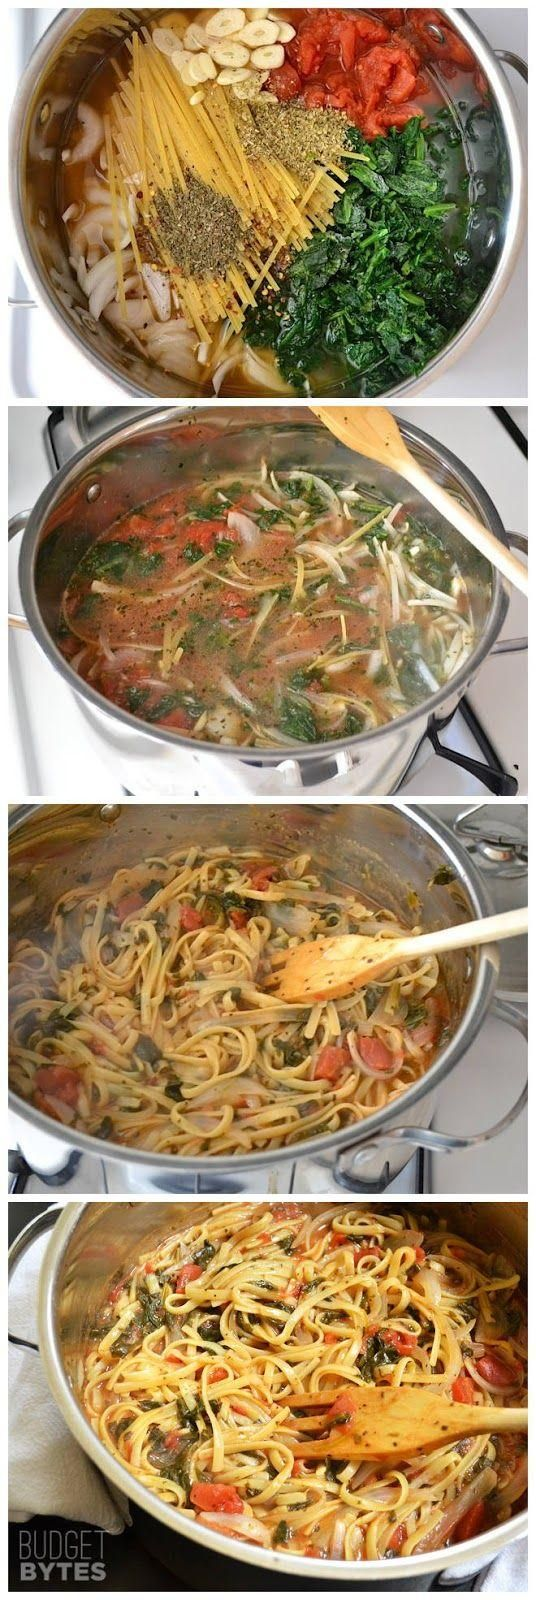 Italian Wonderpot  4 cups vegetable broth,  2 Tbsp olive oil, 12 oz. fettuccine, 8 oz. frozen chopped spinach, 1 (28 oz.) can diced tomatoes, 1 medium onion, 4 cloves garlic, ½ Tbsp dried basil, ½ Tbsp dried oregano, ¼ tsp red pepper flakes, freshly cracked pepper to taste, 2 oz. feta cheese.